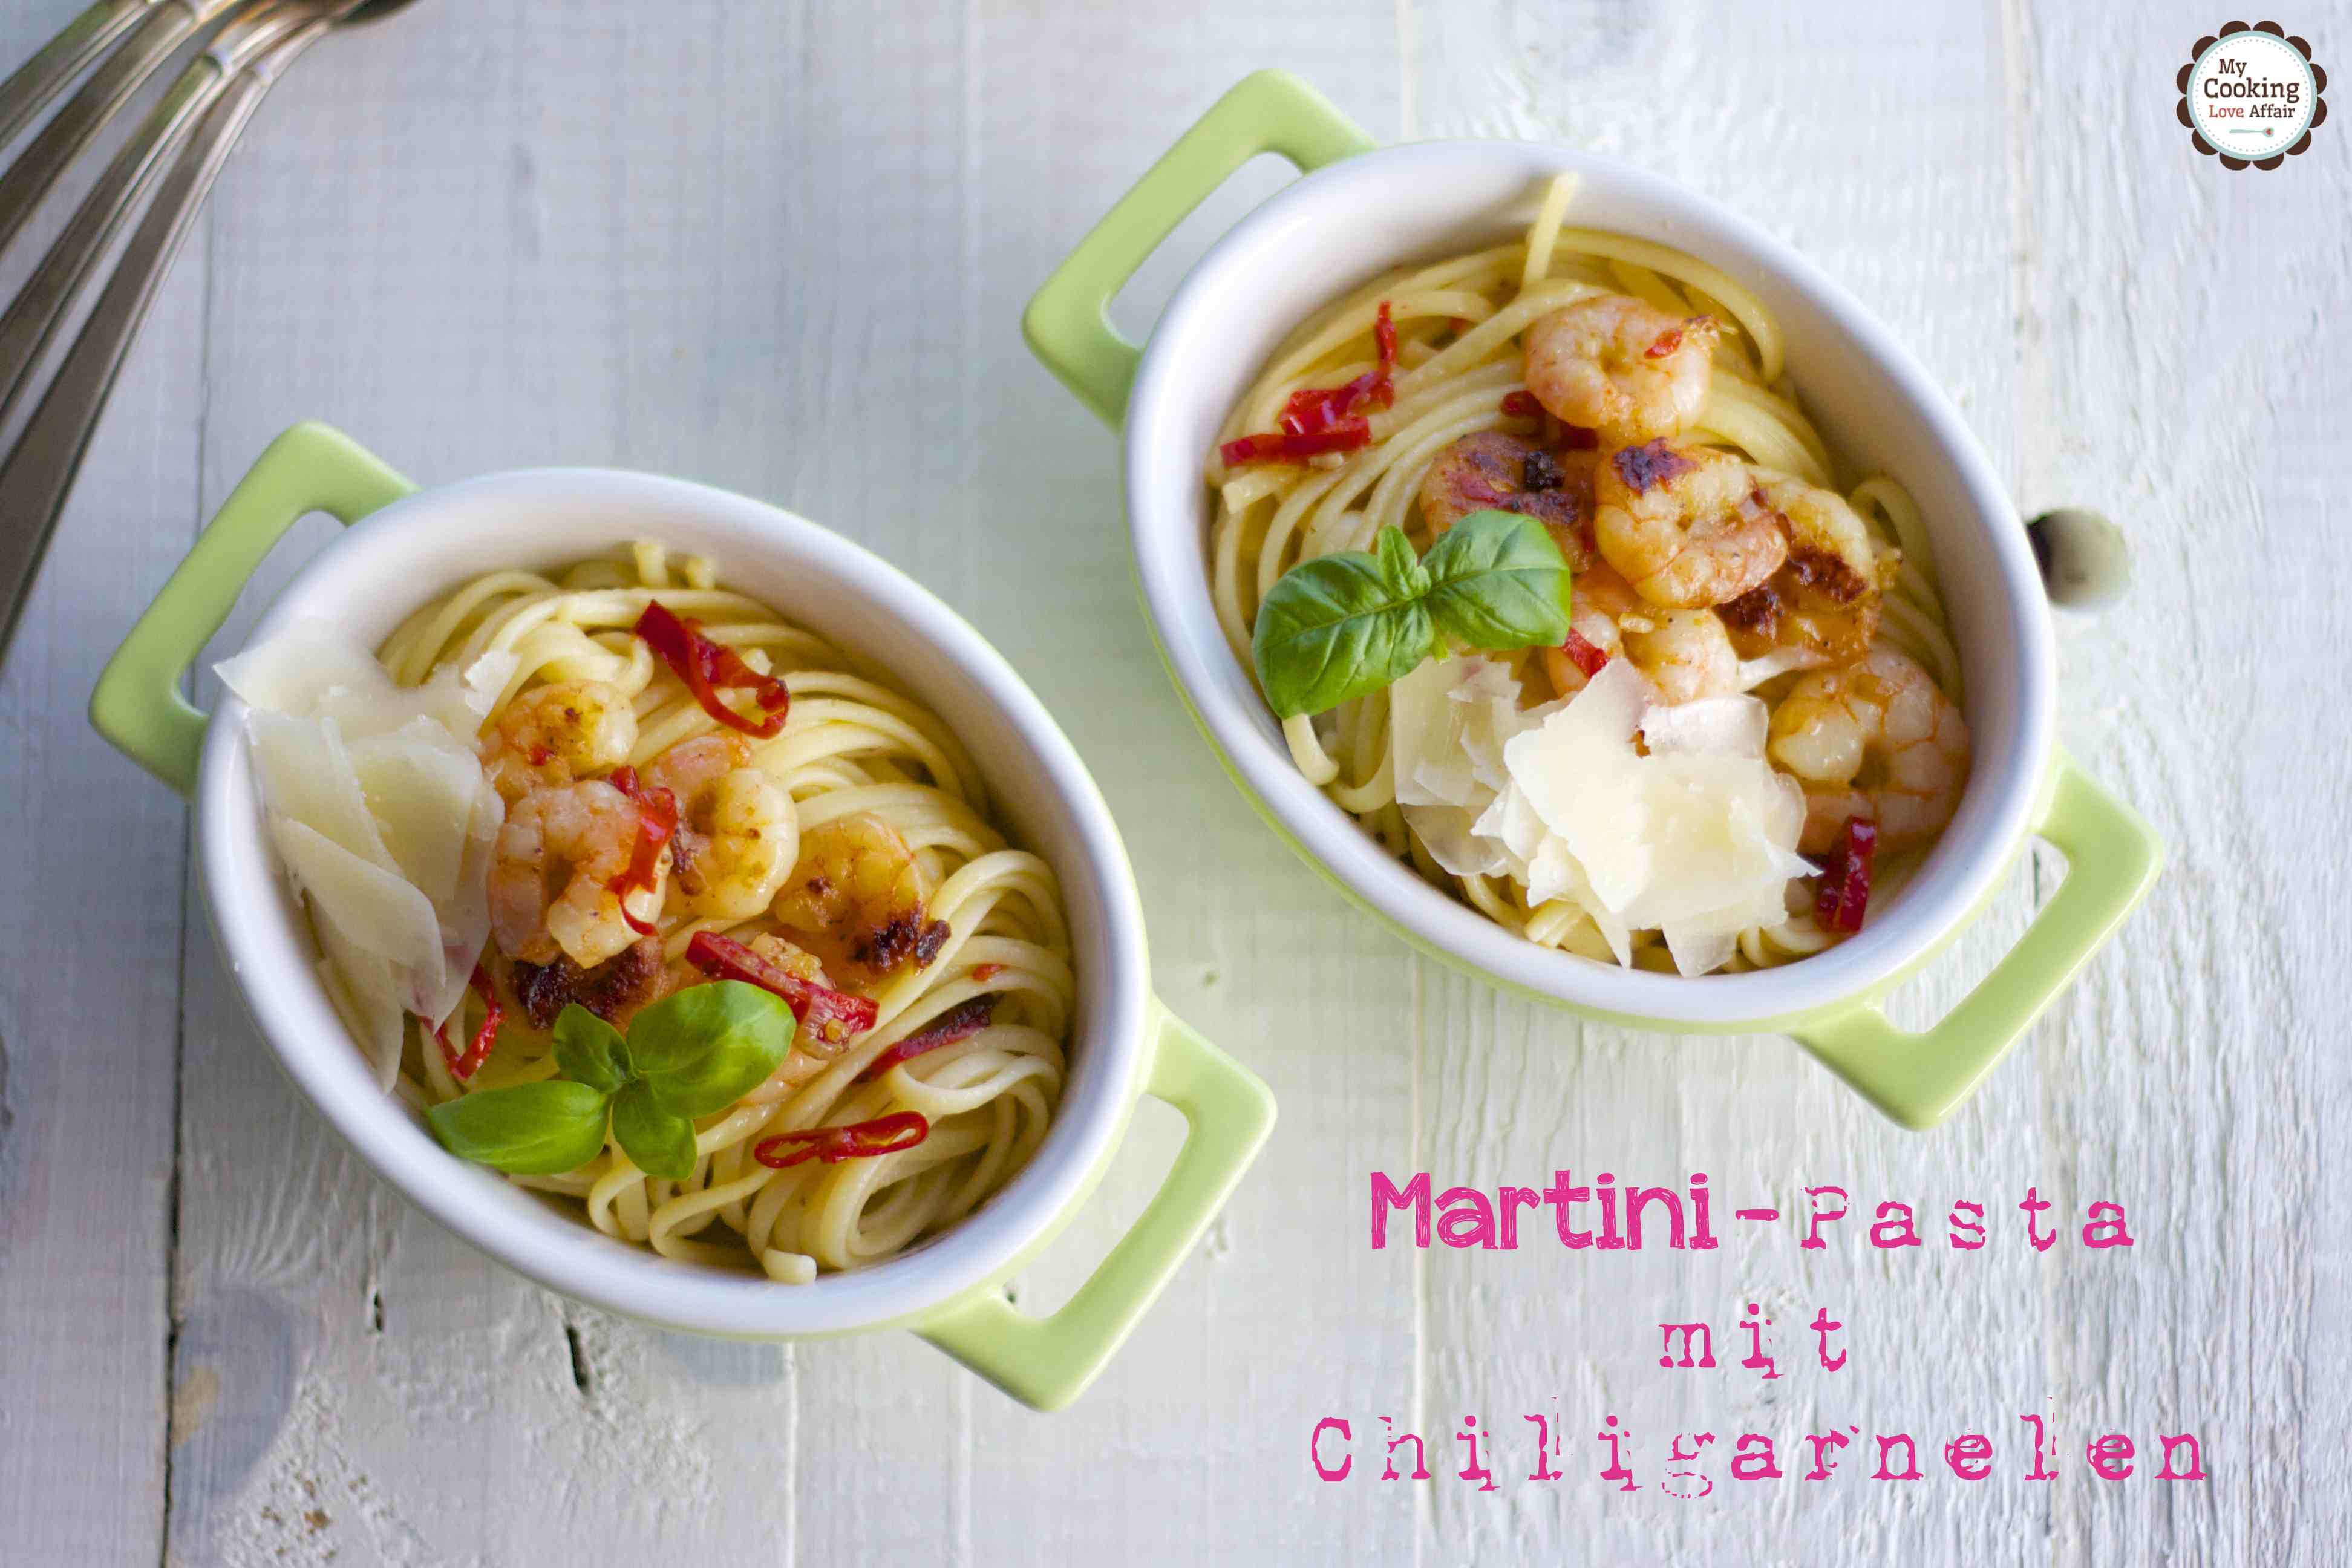 Martini-Pasta mit Chiligarnelen